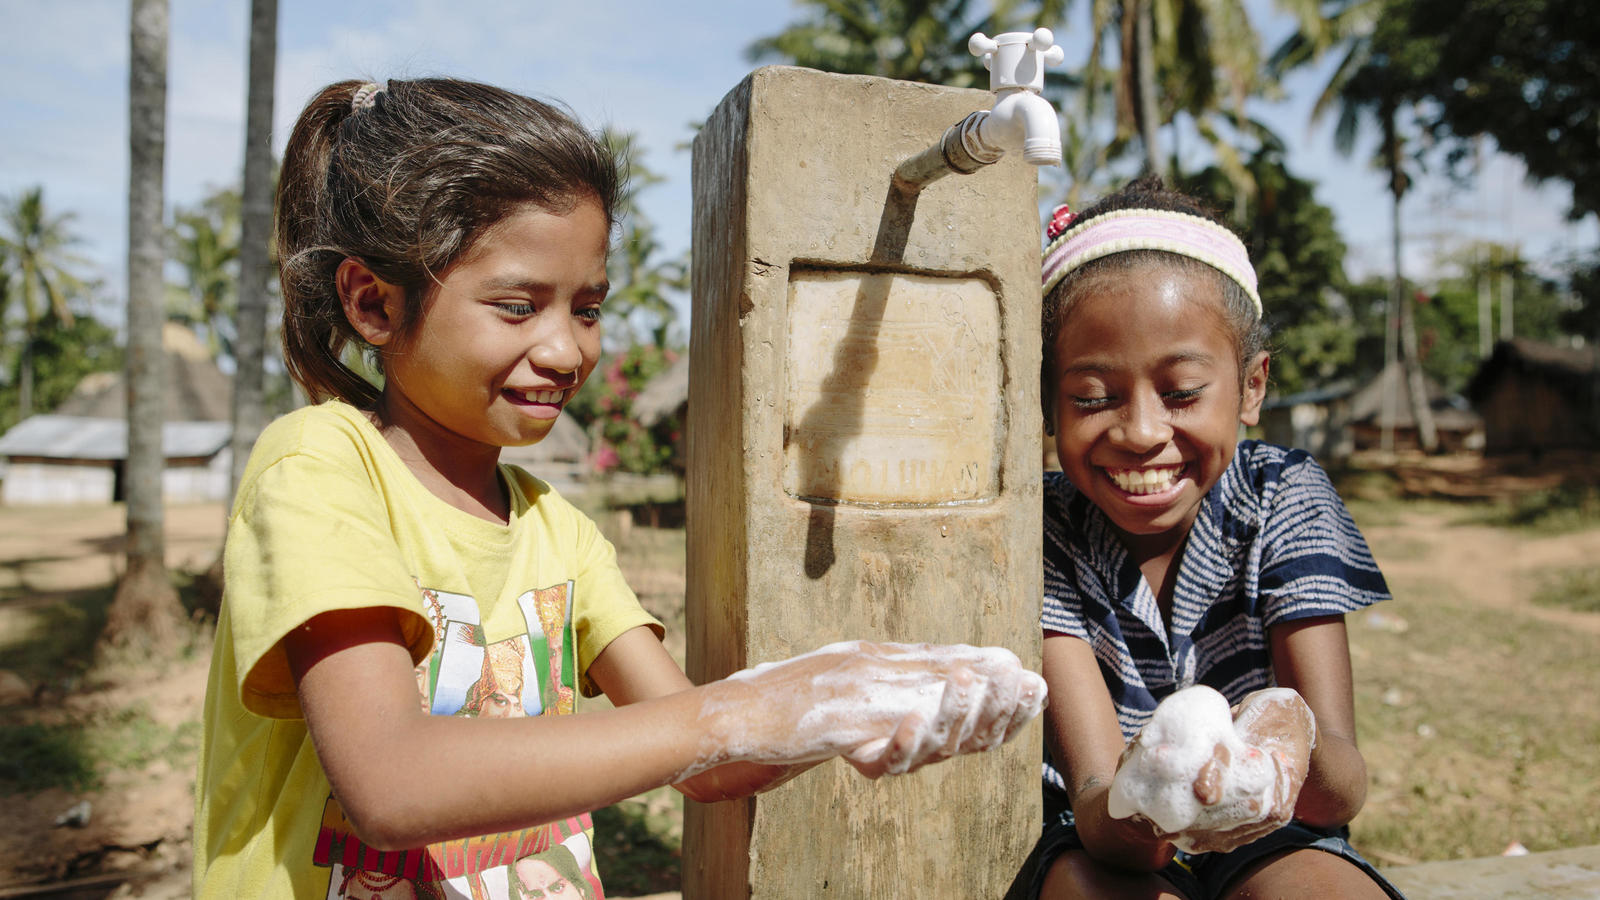 Crizonia Soares, 7, and Dircia Dos Santos, 7, handwashing at one of the new tap stands in the village of Grotu in Manufahi District, Timor-Leste, 2015